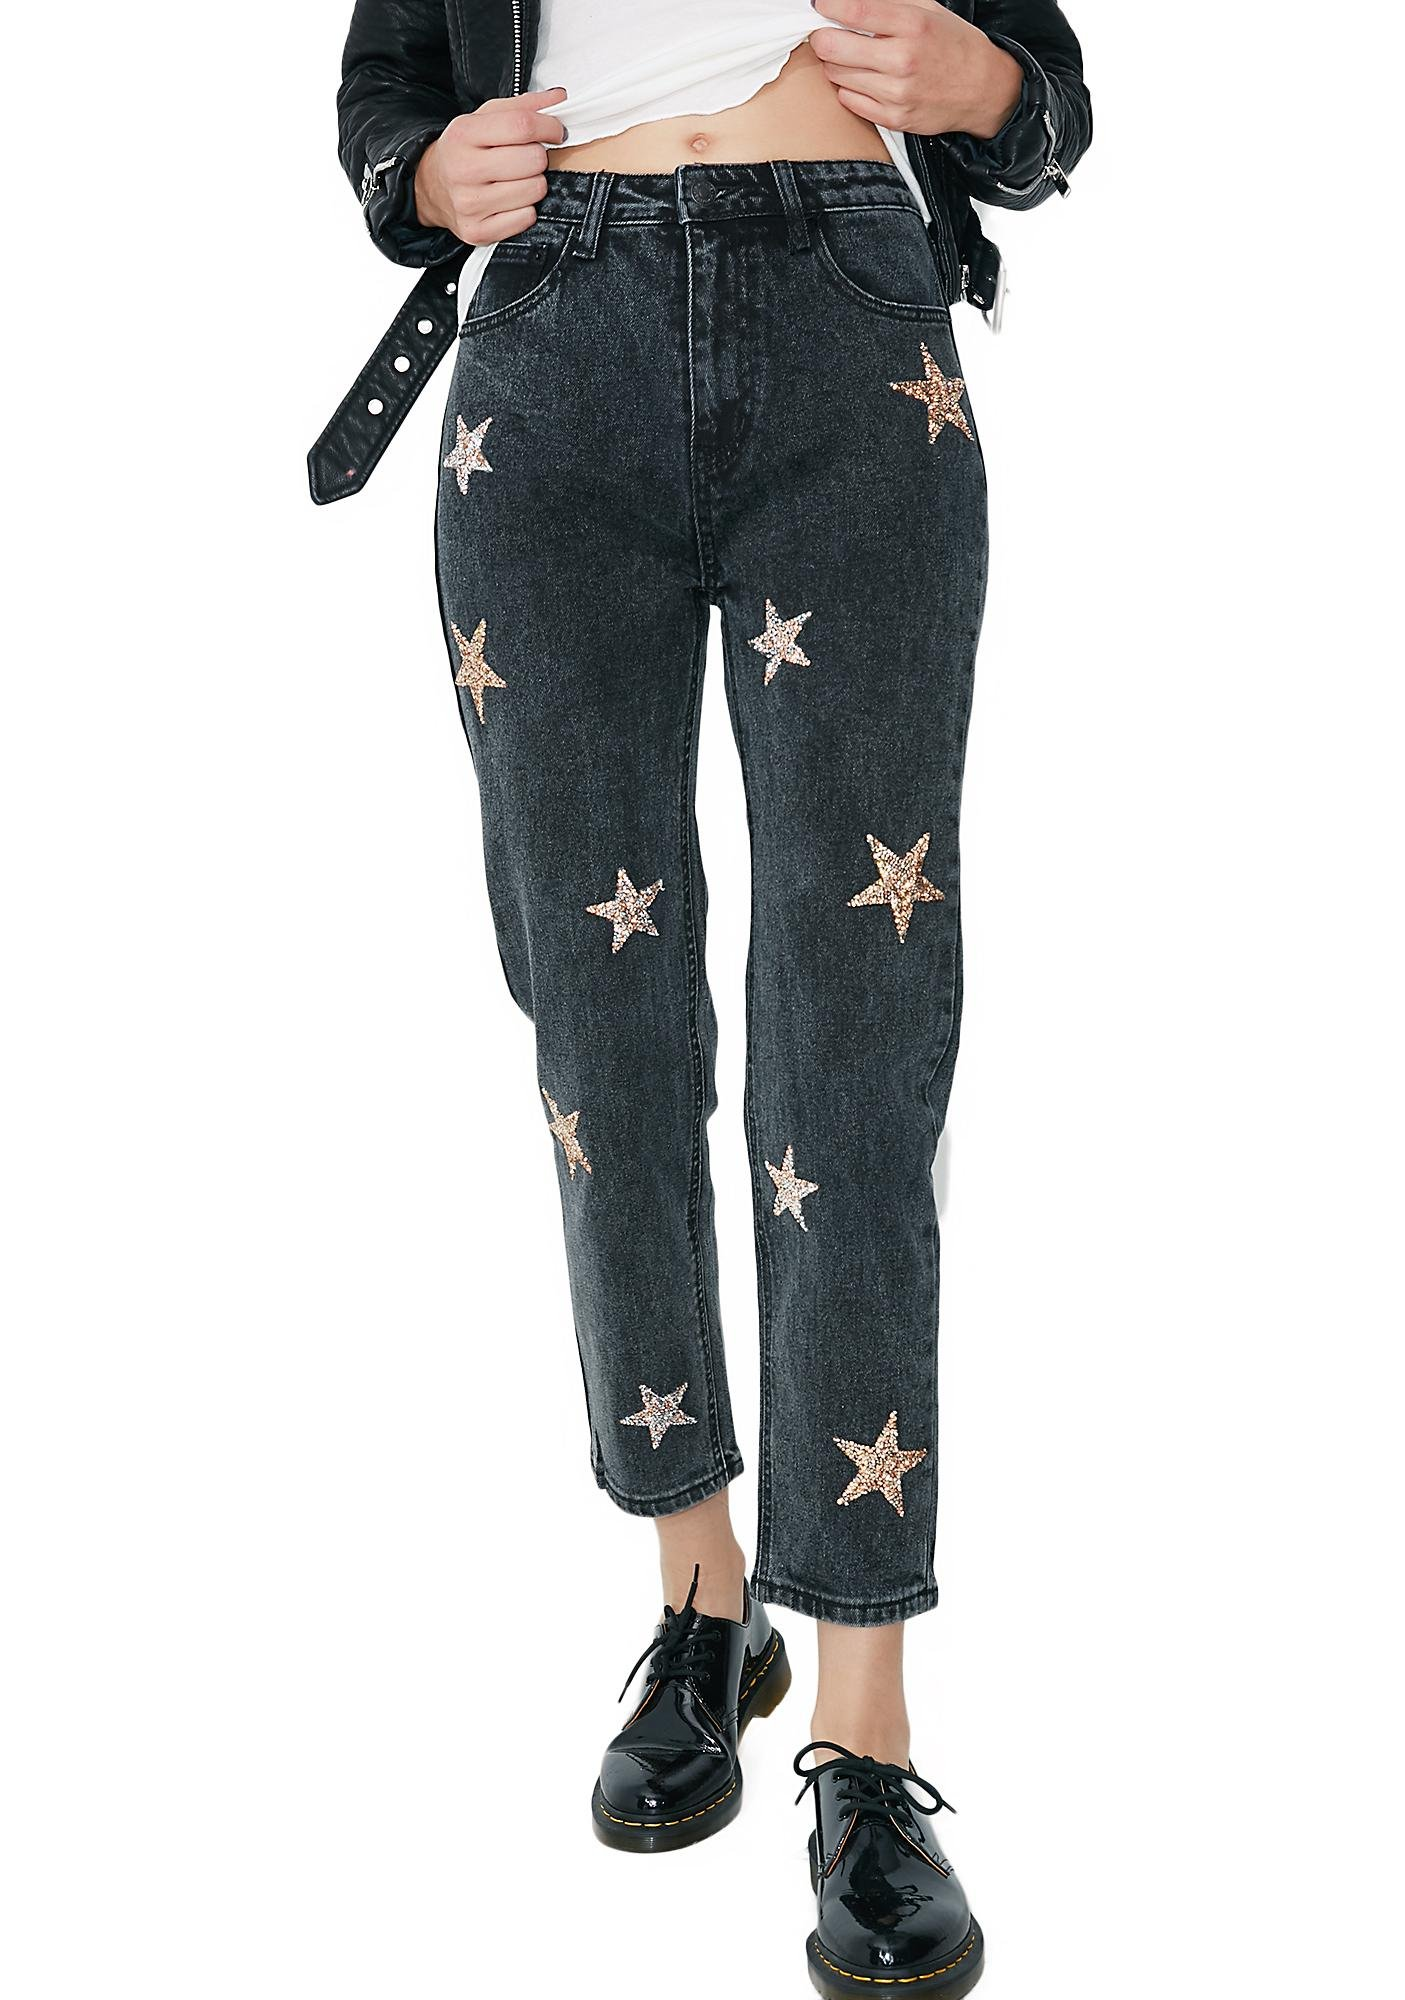 All Starz Denim Jeans